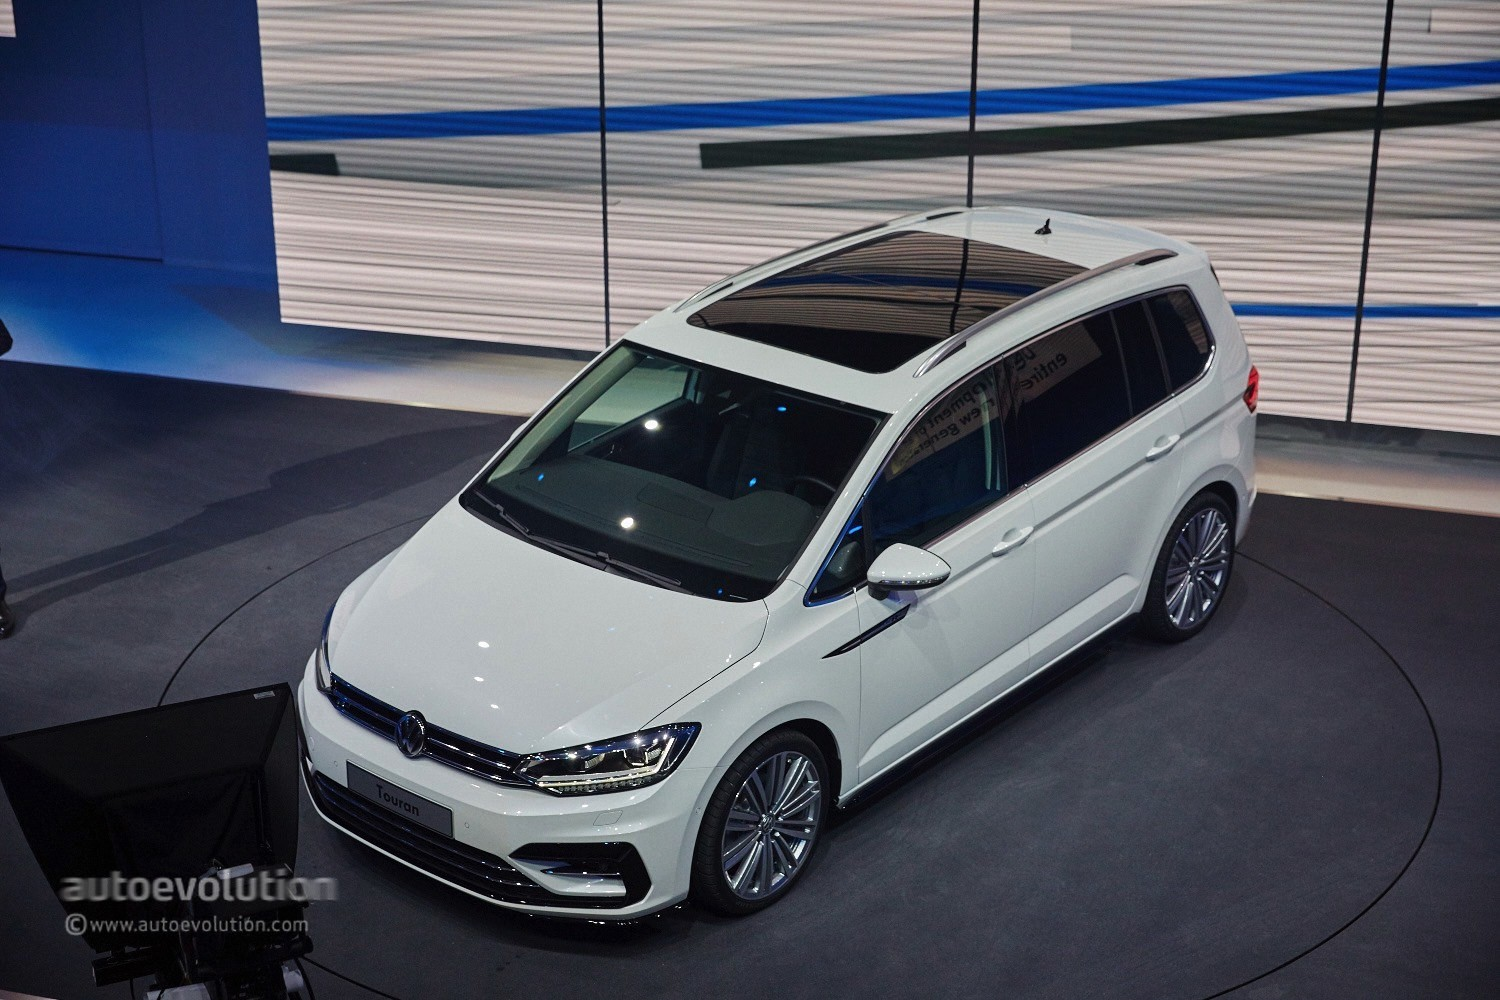 2016 volkswagen touran debuts class leading mpv technologies in geneva autoevolution. Black Bedroom Furniture Sets. Home Design Ideas